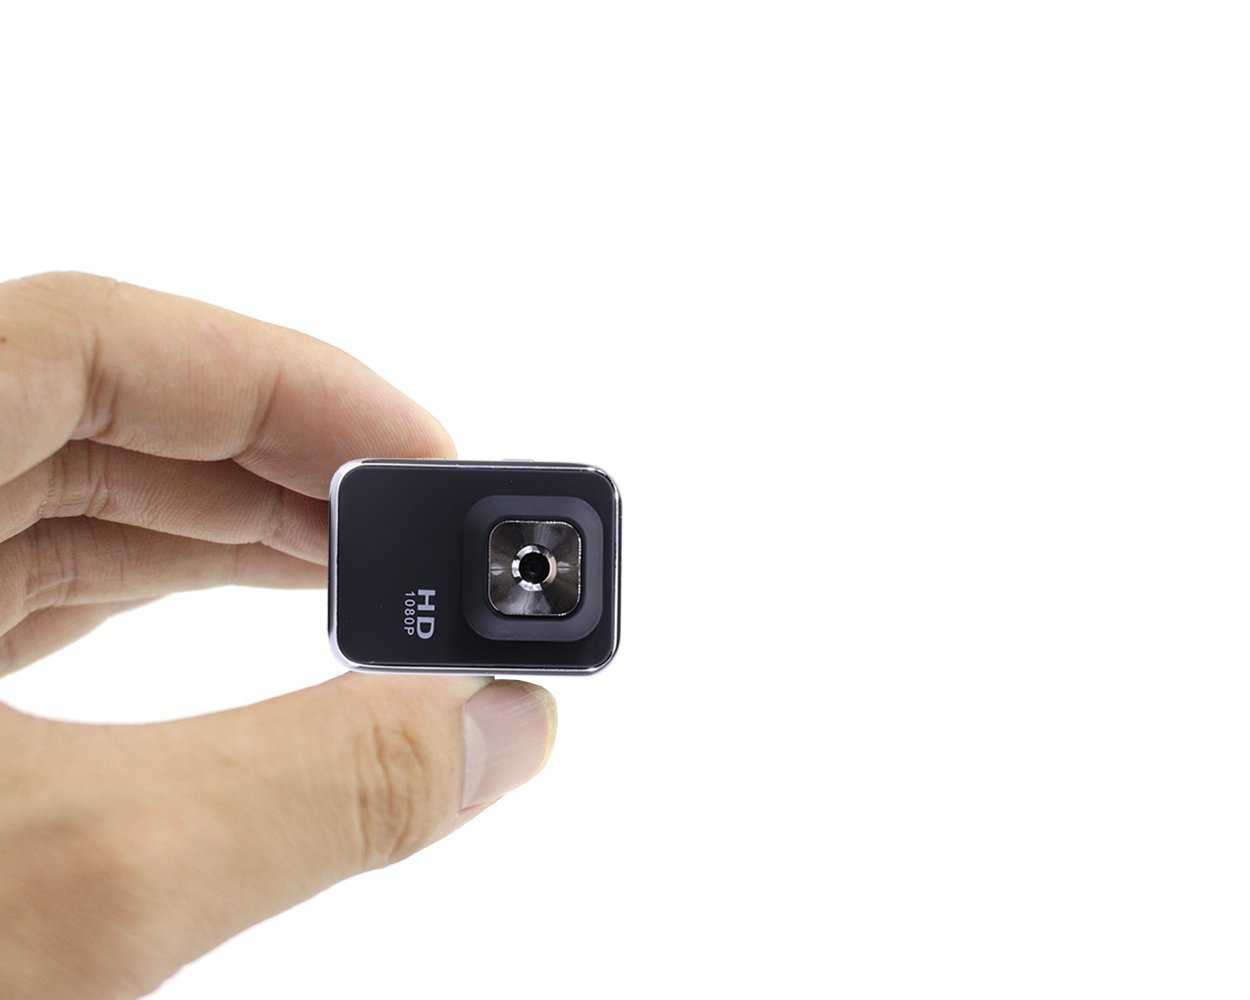 Infrared Night Vision Mini Hidden Spy Camera Full HD 1080P with 140° Wide Angle,Wearable Mini Spy Camera Wireless Outdoor/Indoor Sports DV Motion Detecting PC Camera Taking Photo Driving Recorder.